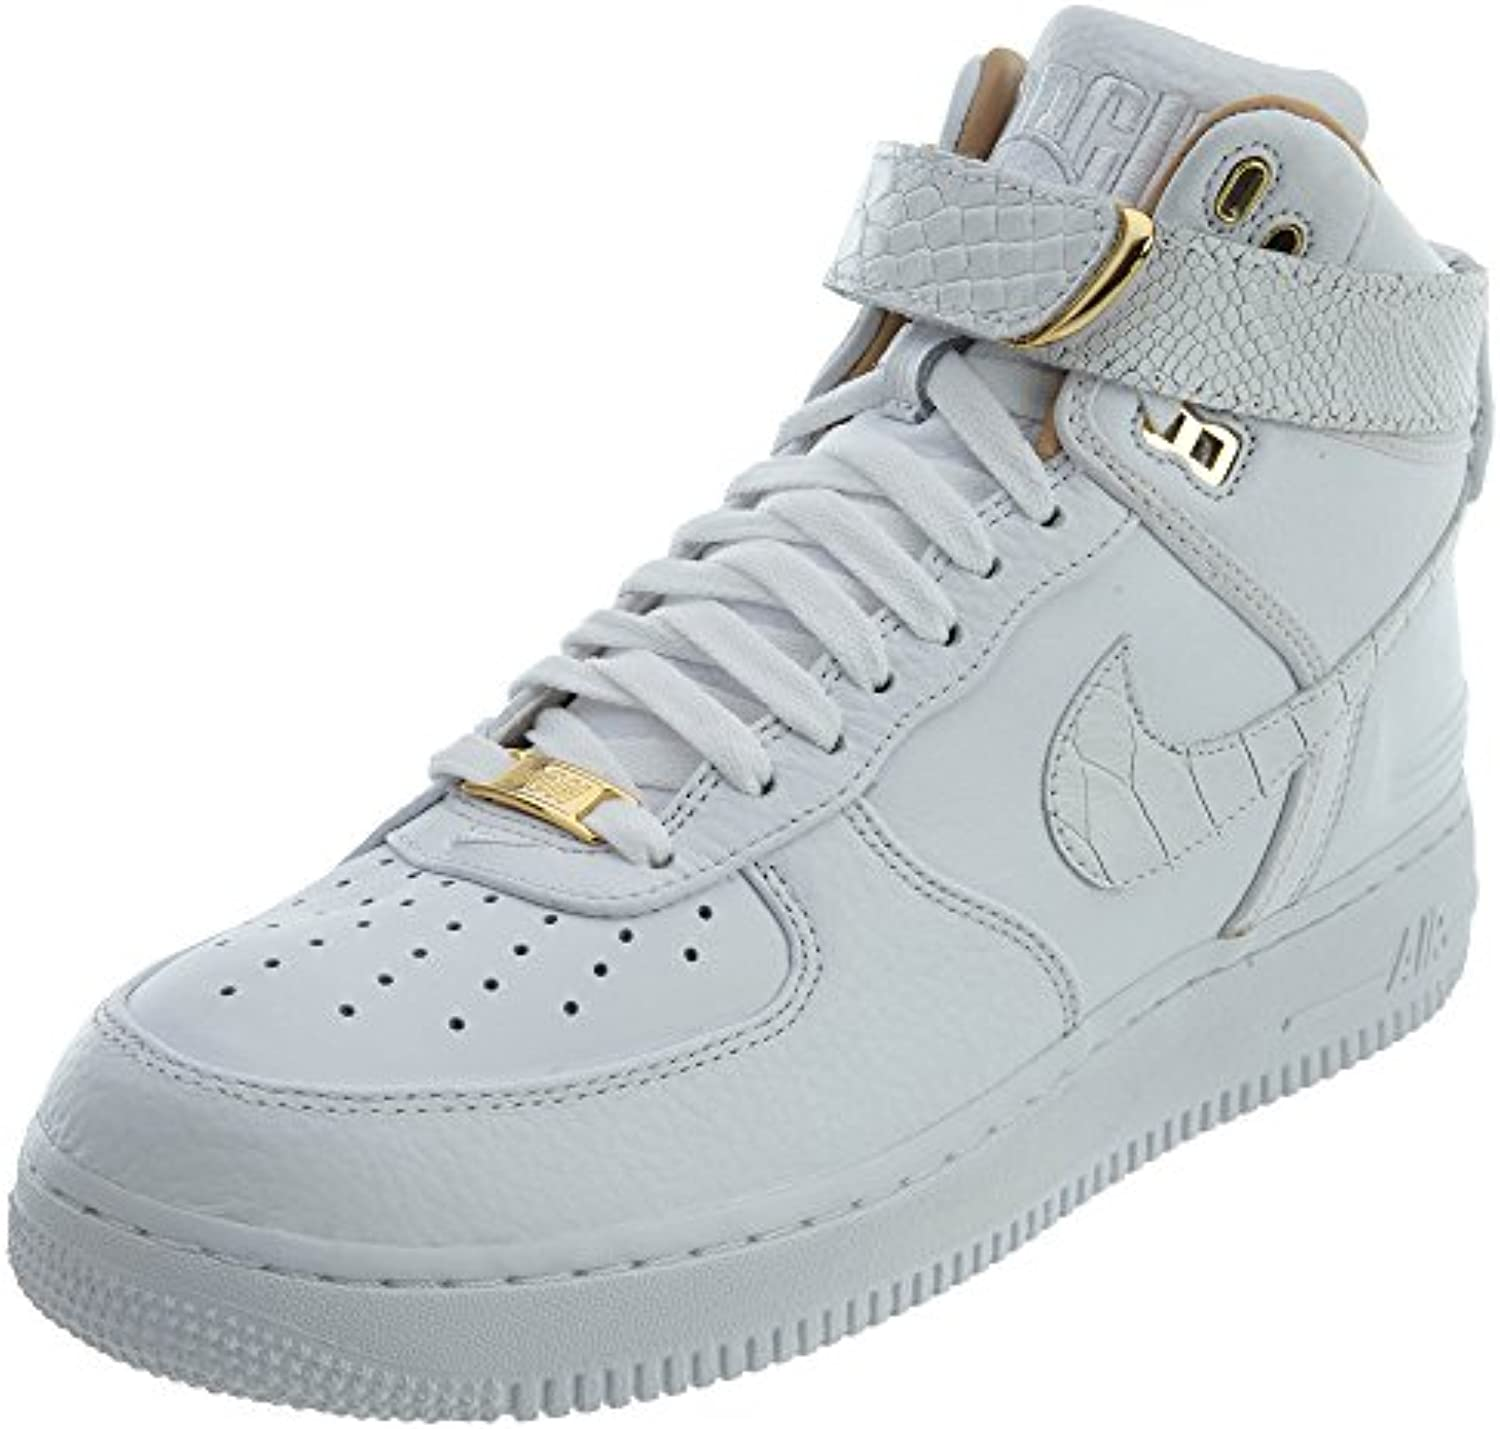 Nike Air Force 1 HI Just Don 'Just Don' - AO1074-100 - Size 10 -